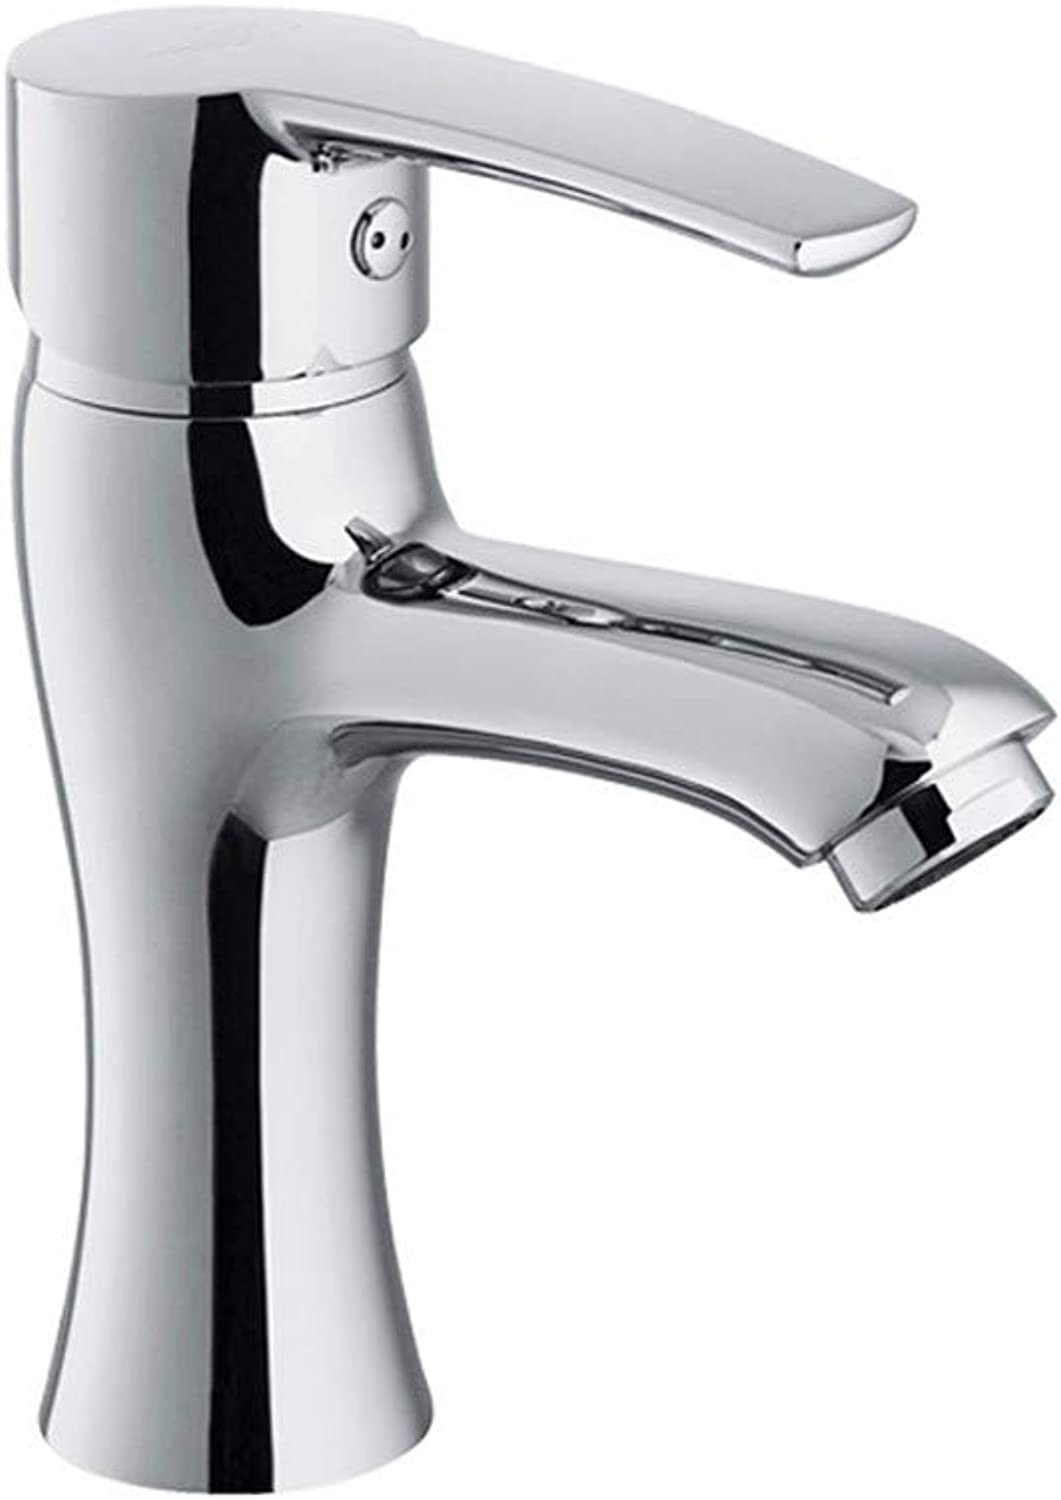 Zhcmy?Faucet Hot And Cold Thick Single Hole Basin Faucet